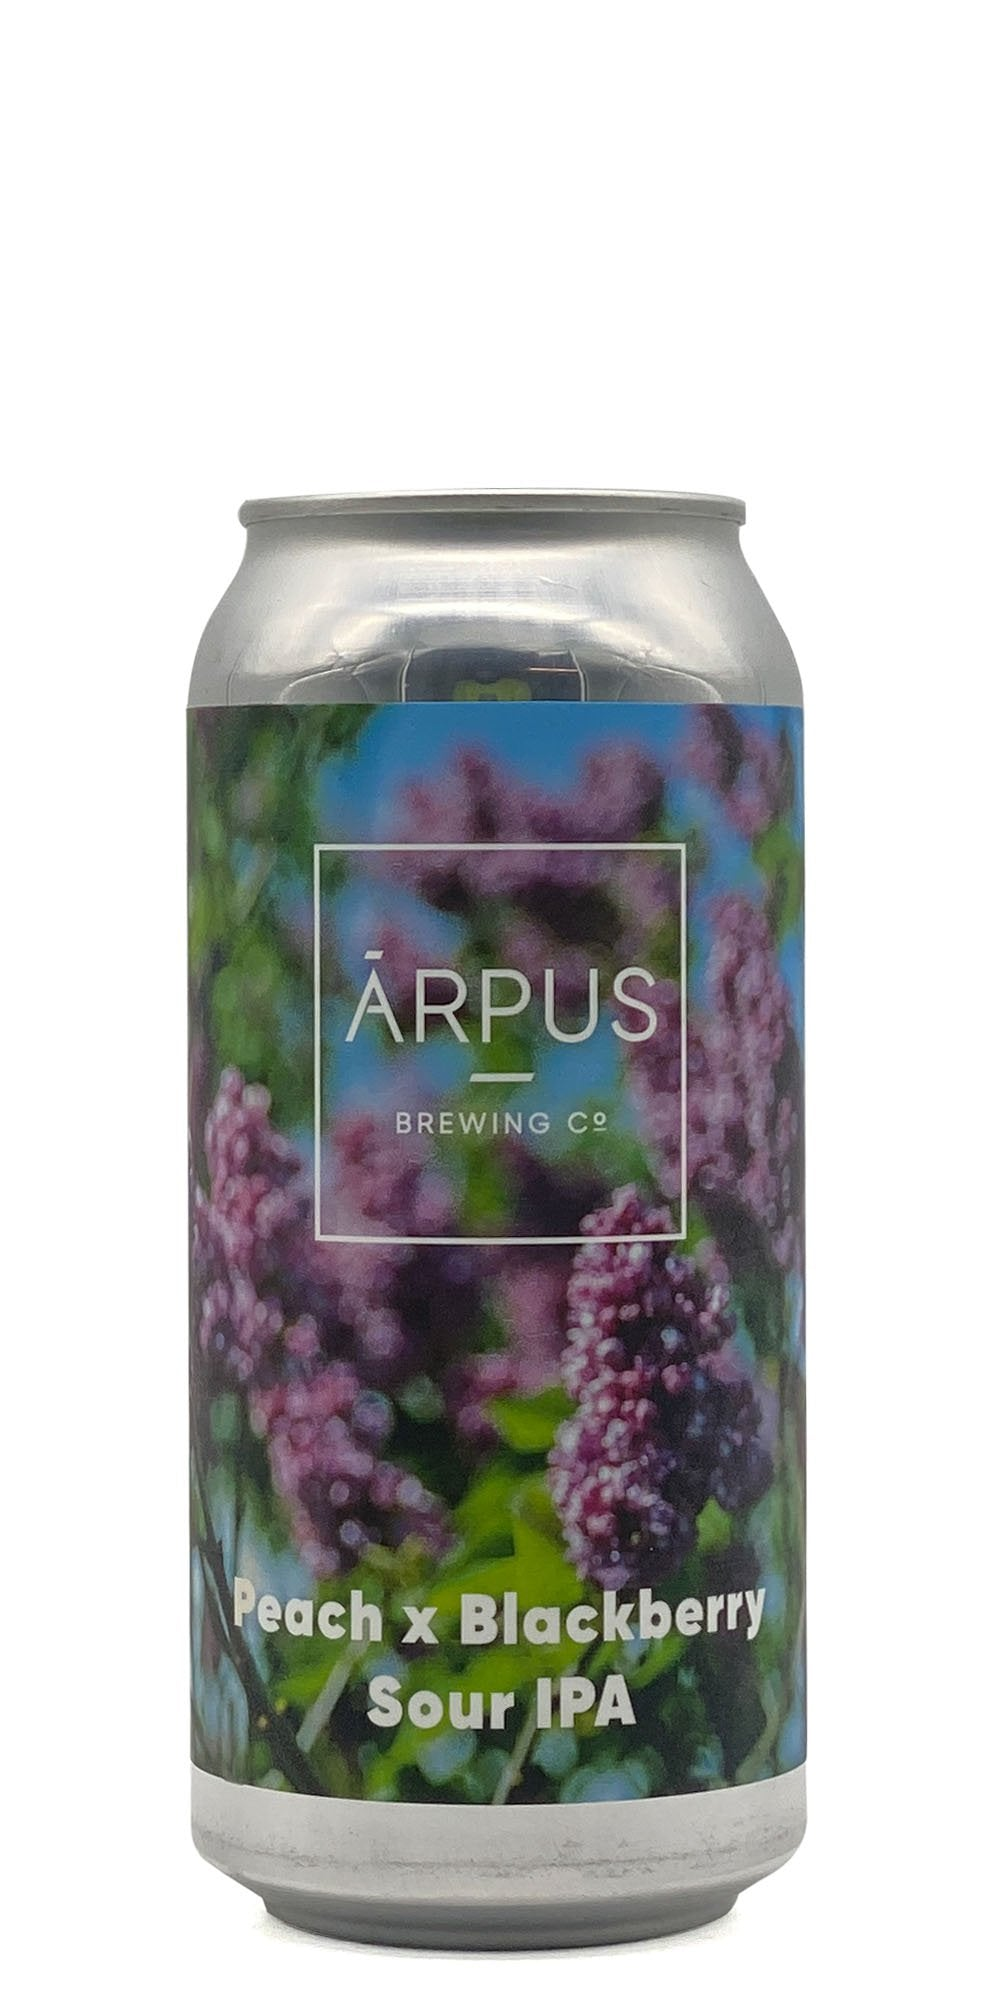 Arpus Brewing Co - Peach x Blackberry Sour IPA